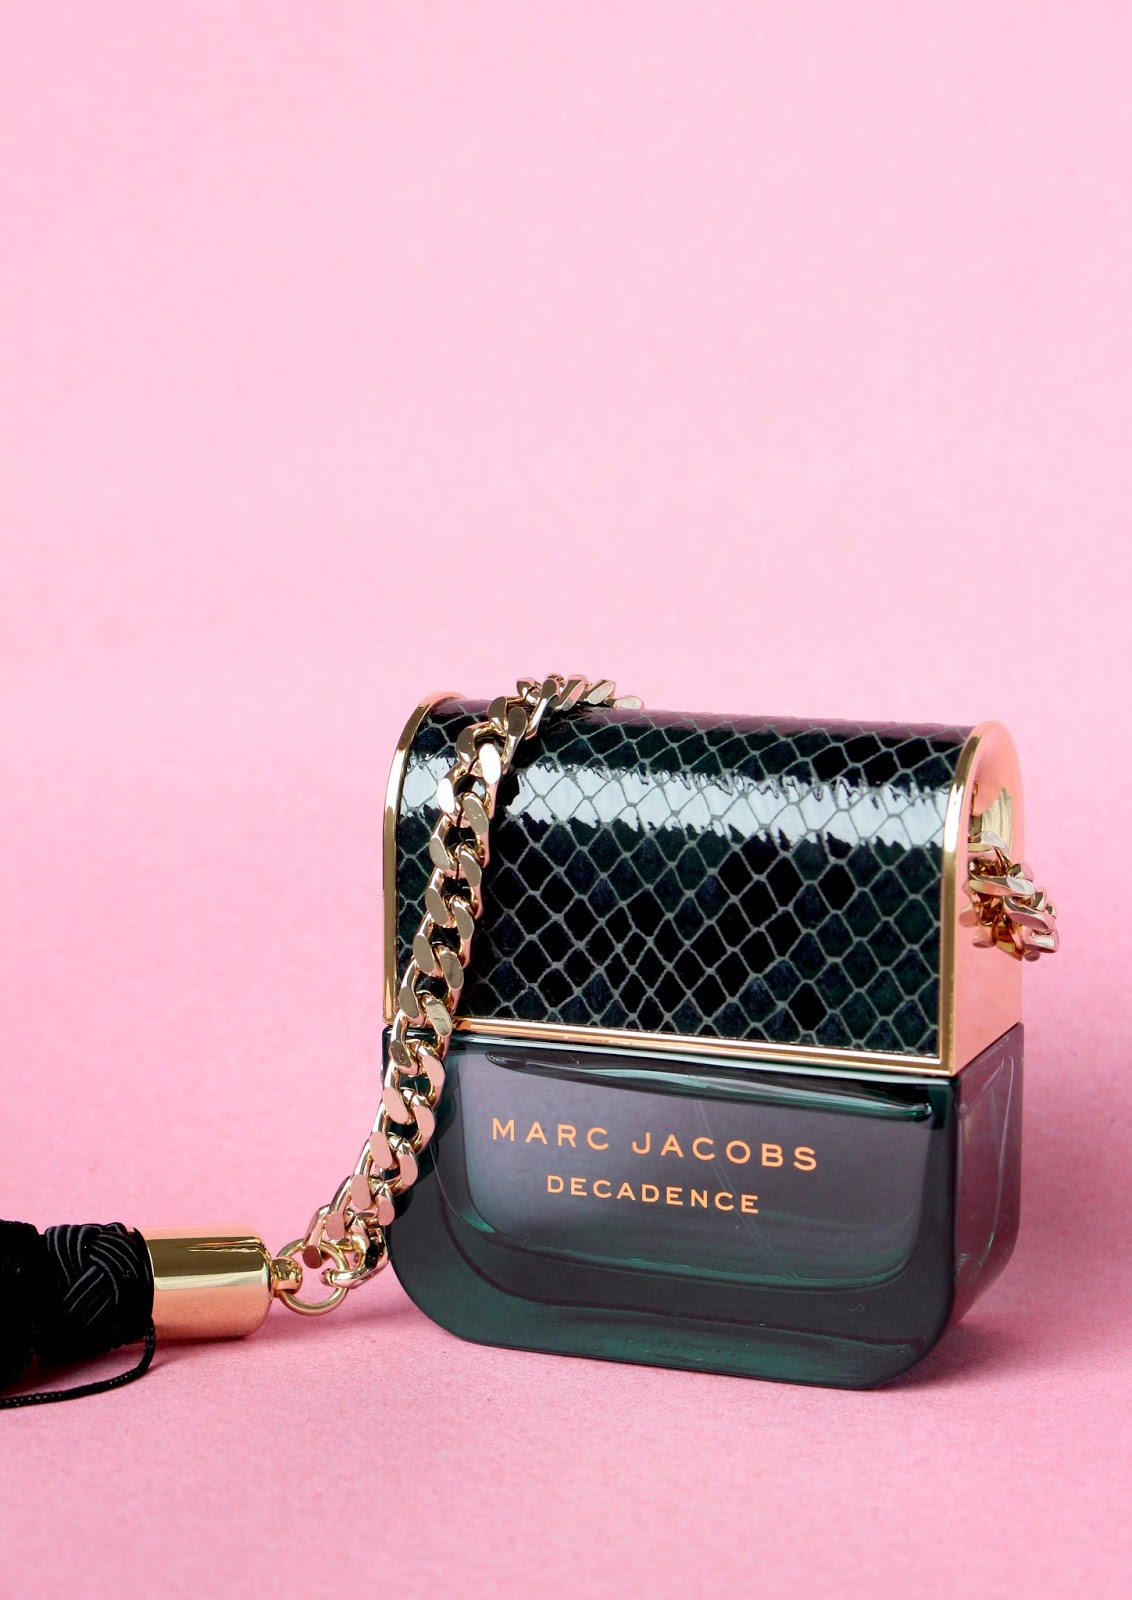 Marc Jacobs Decadence Perfume Fragrance